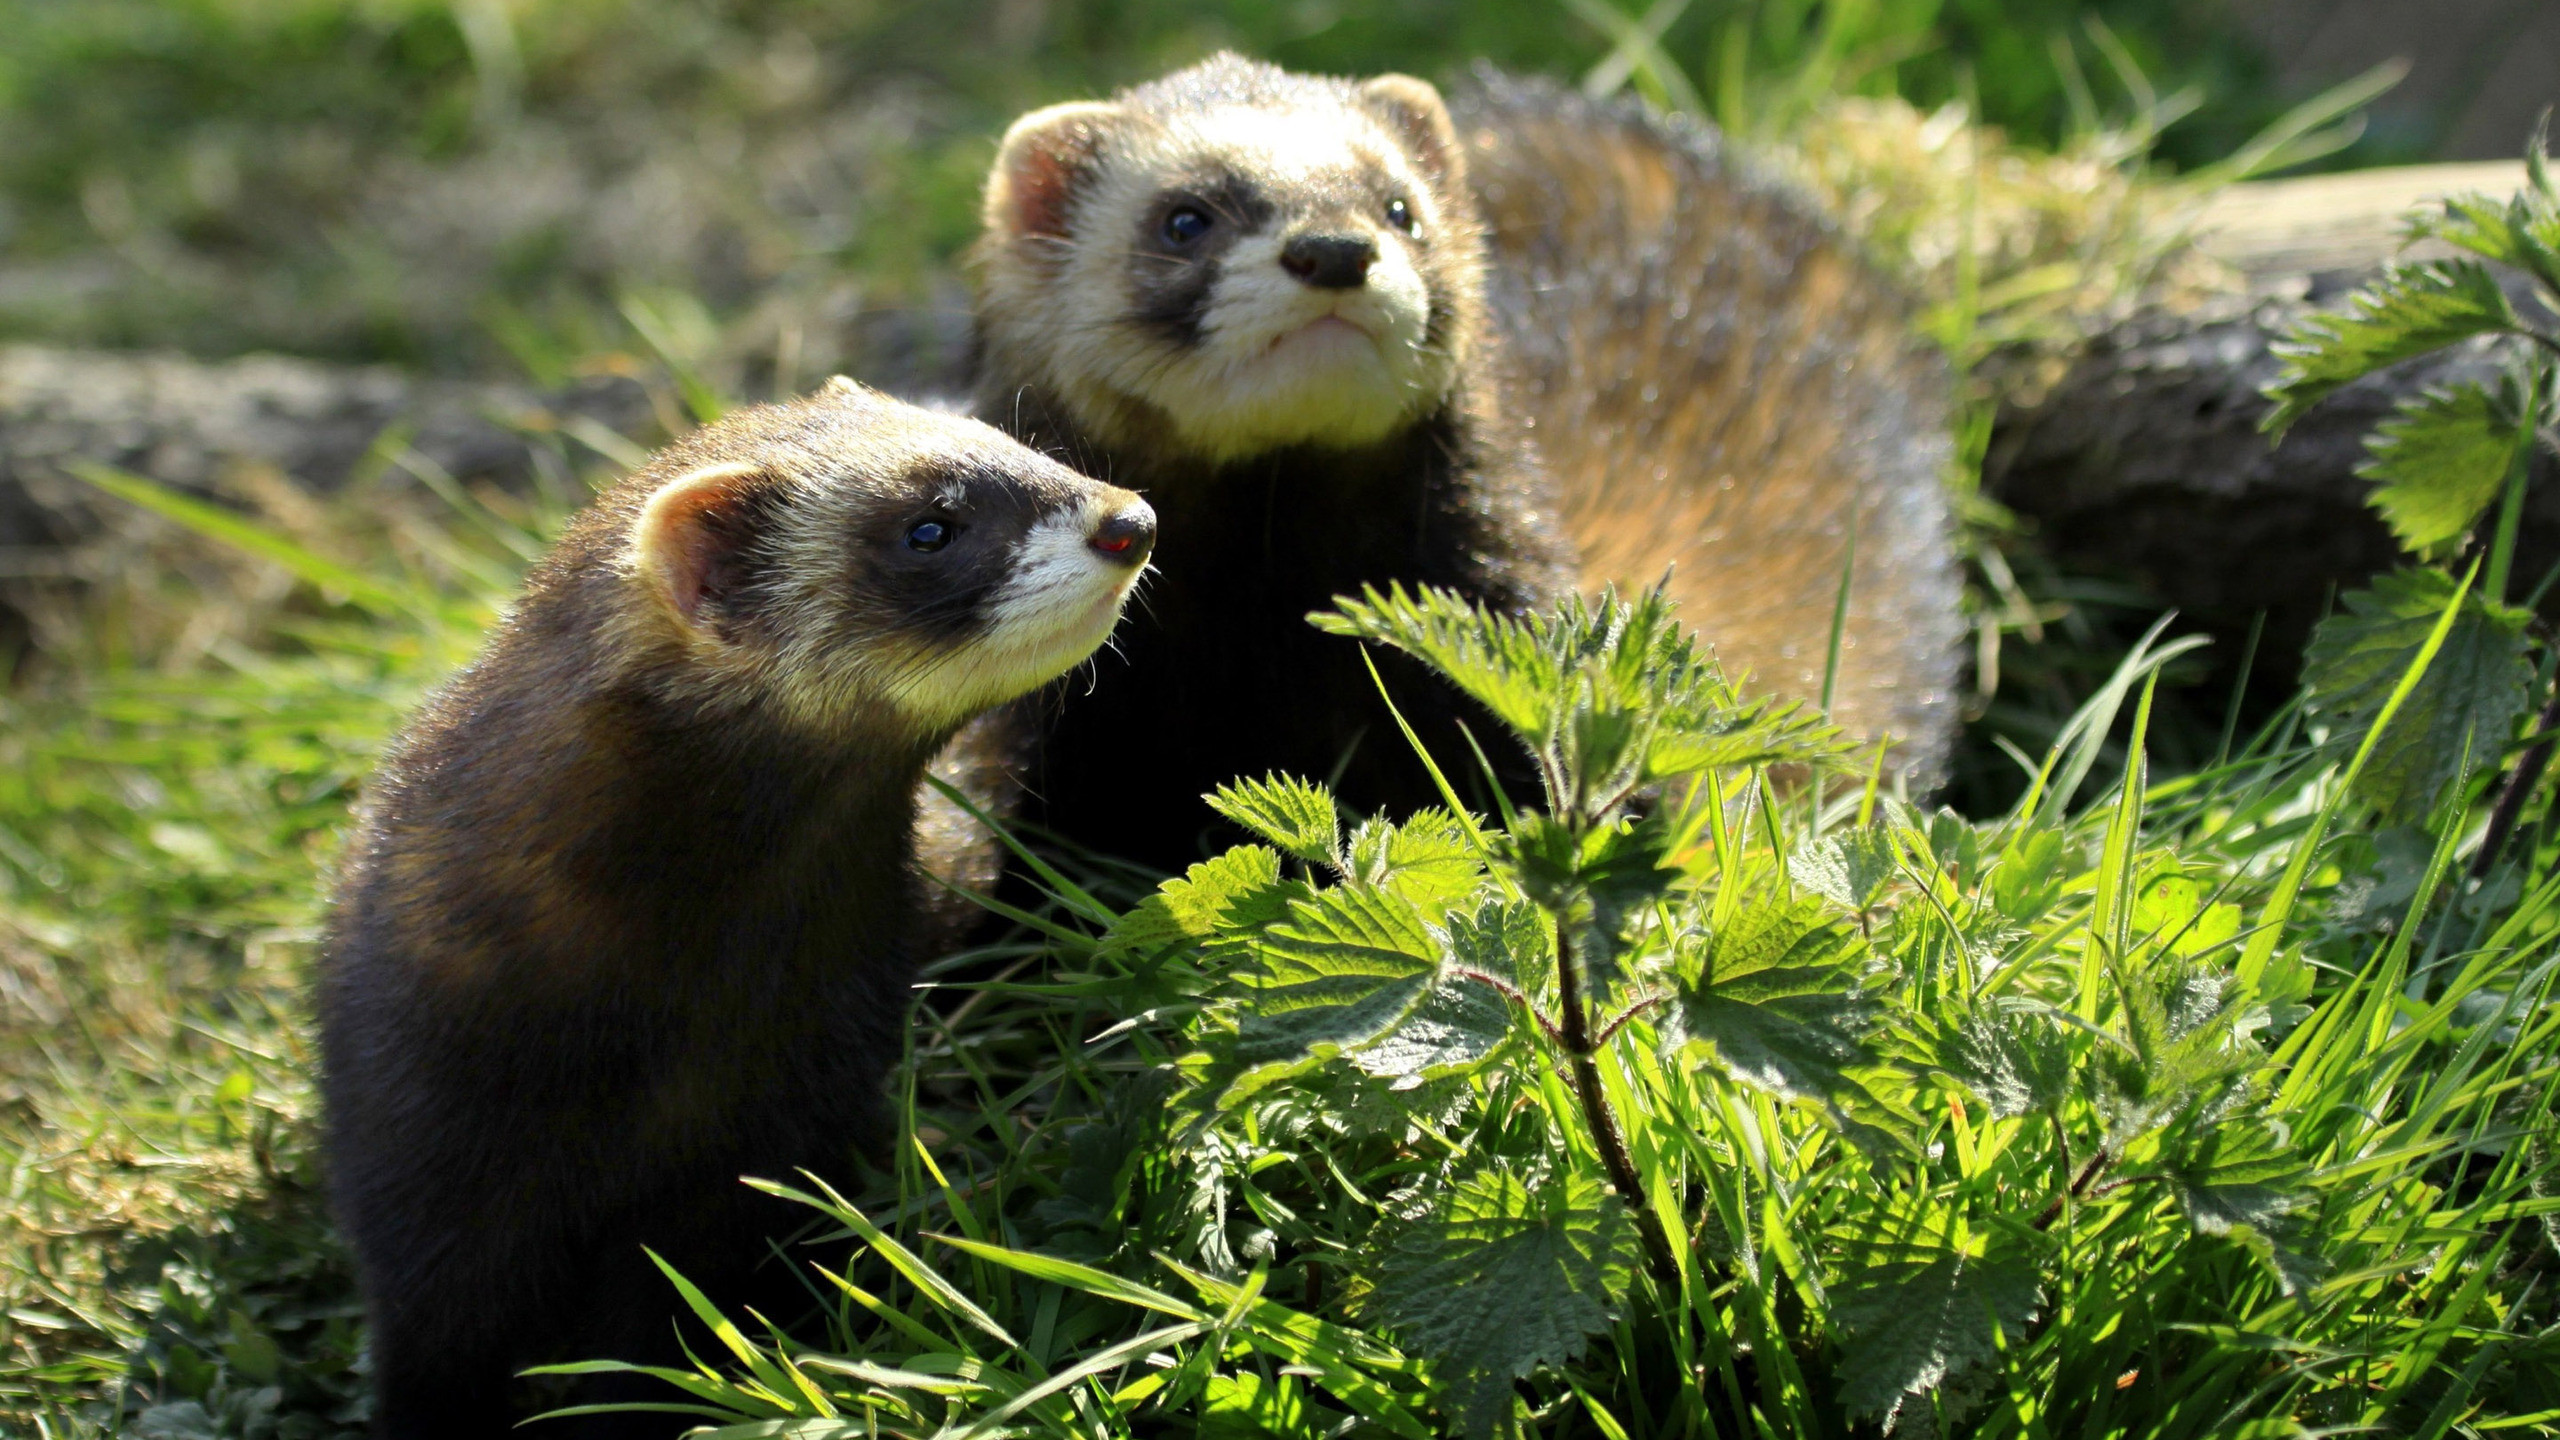 Res: 2560x1440, ... in the grass HD Wallpaper  Ferrets ...